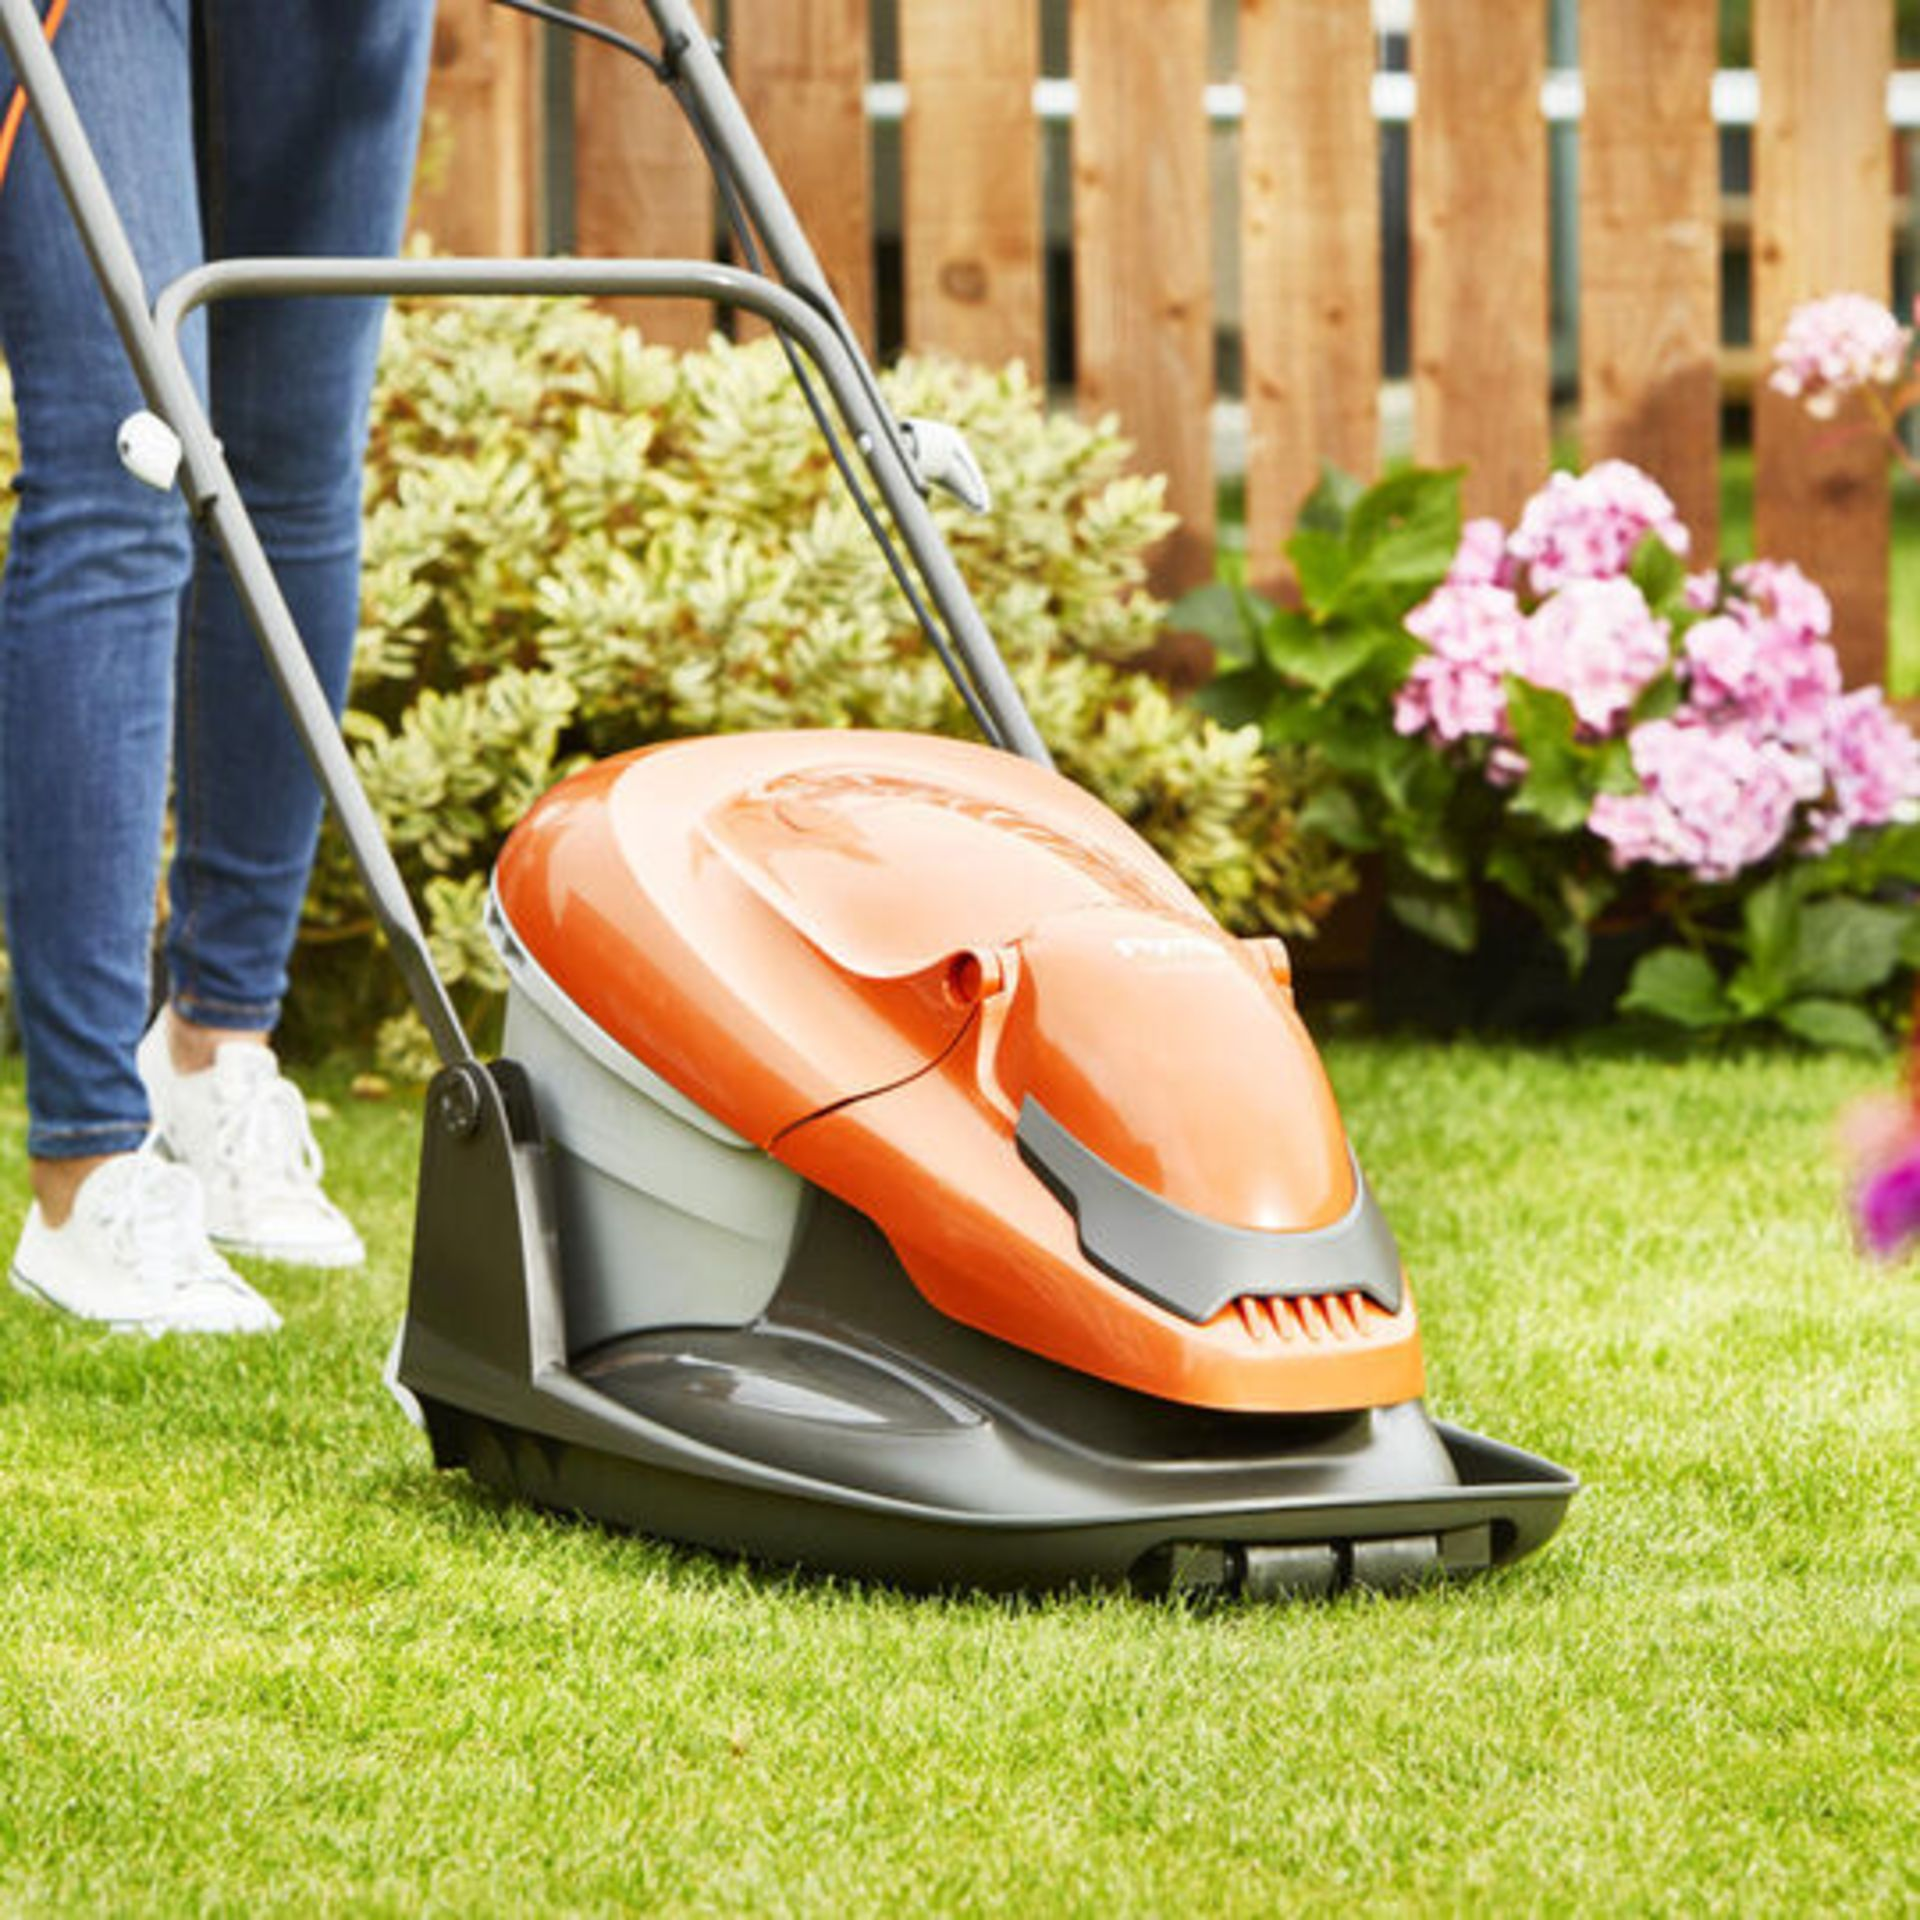 (P9) 1x Flymo Easiglide 300 RRP £99. Electric Hover Collect Lawnmower. - Image 2 of 3